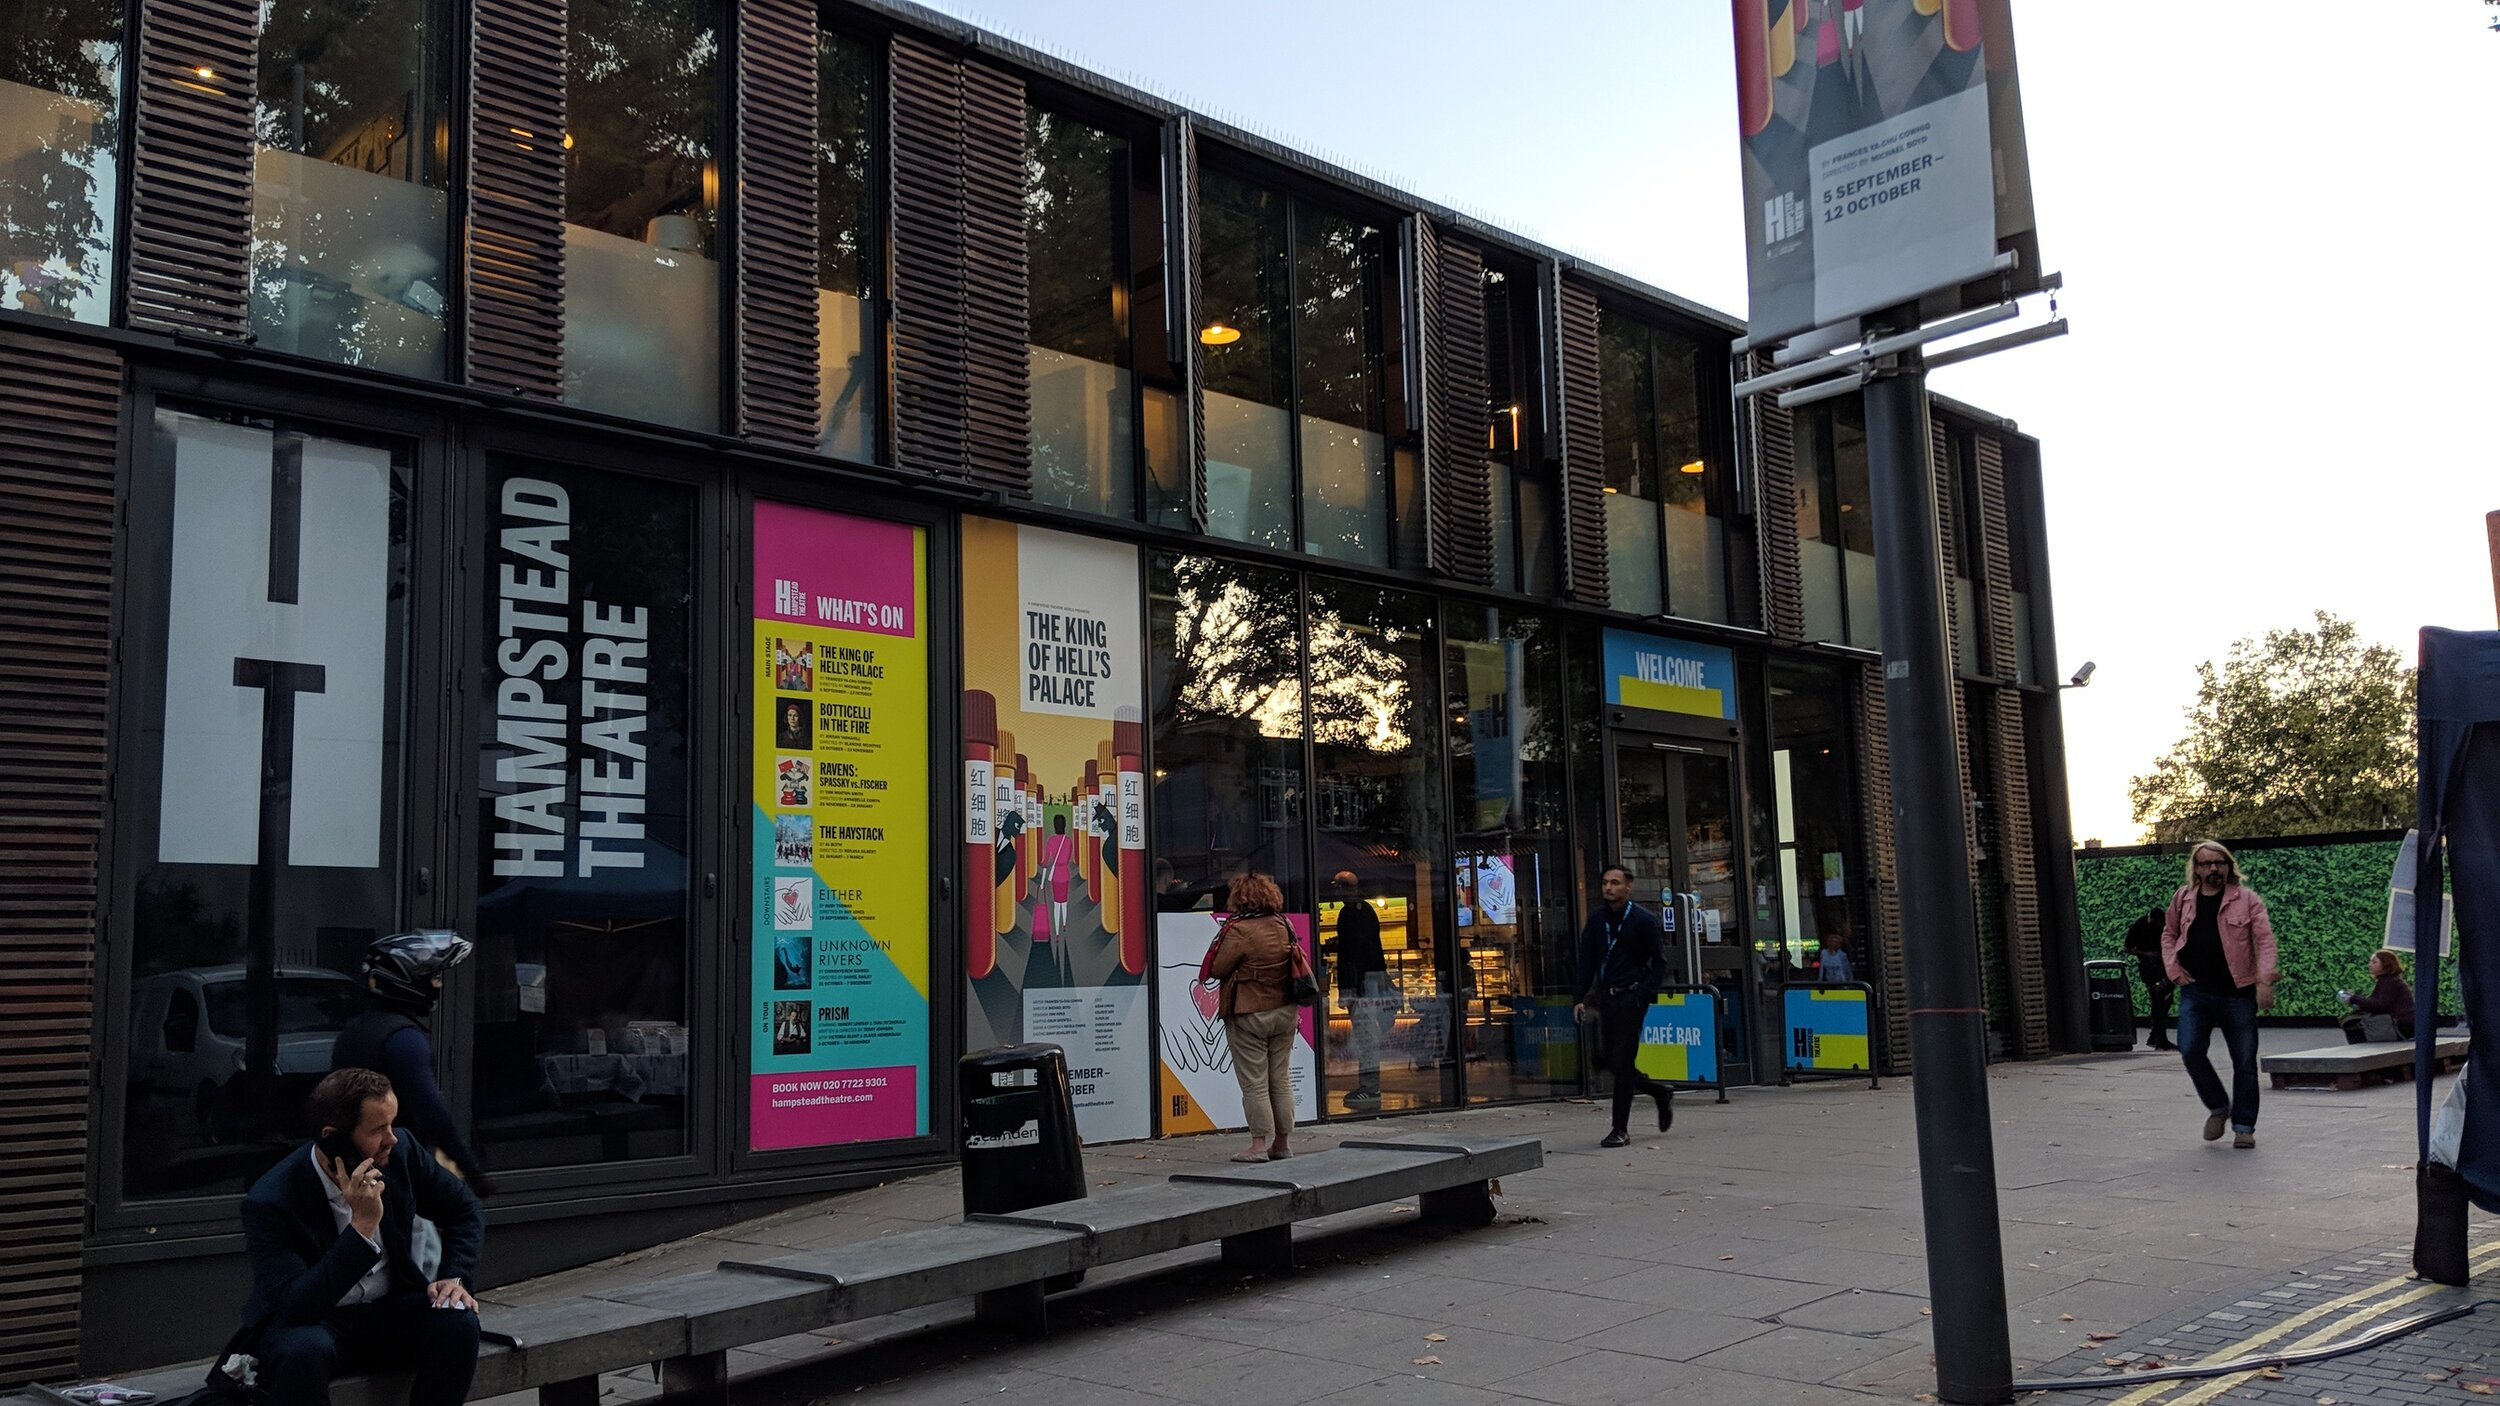 Hampstead Theatre(Upstairs) - visited 19/09/2019